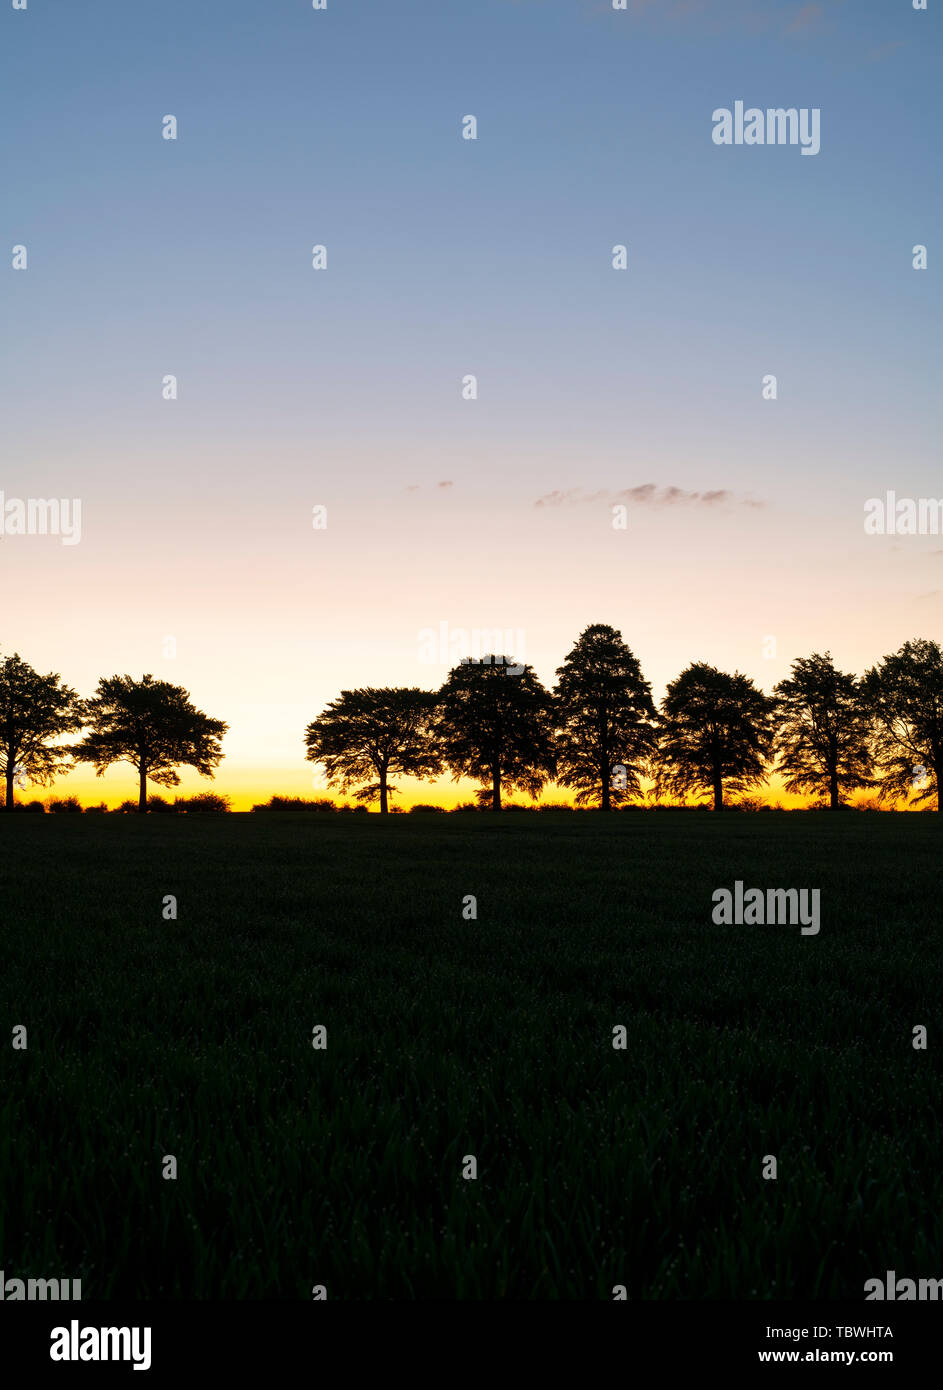 Line of silhouette trees at sunrise in the wiltshire countryside. Wiltshire, England Stock Photo